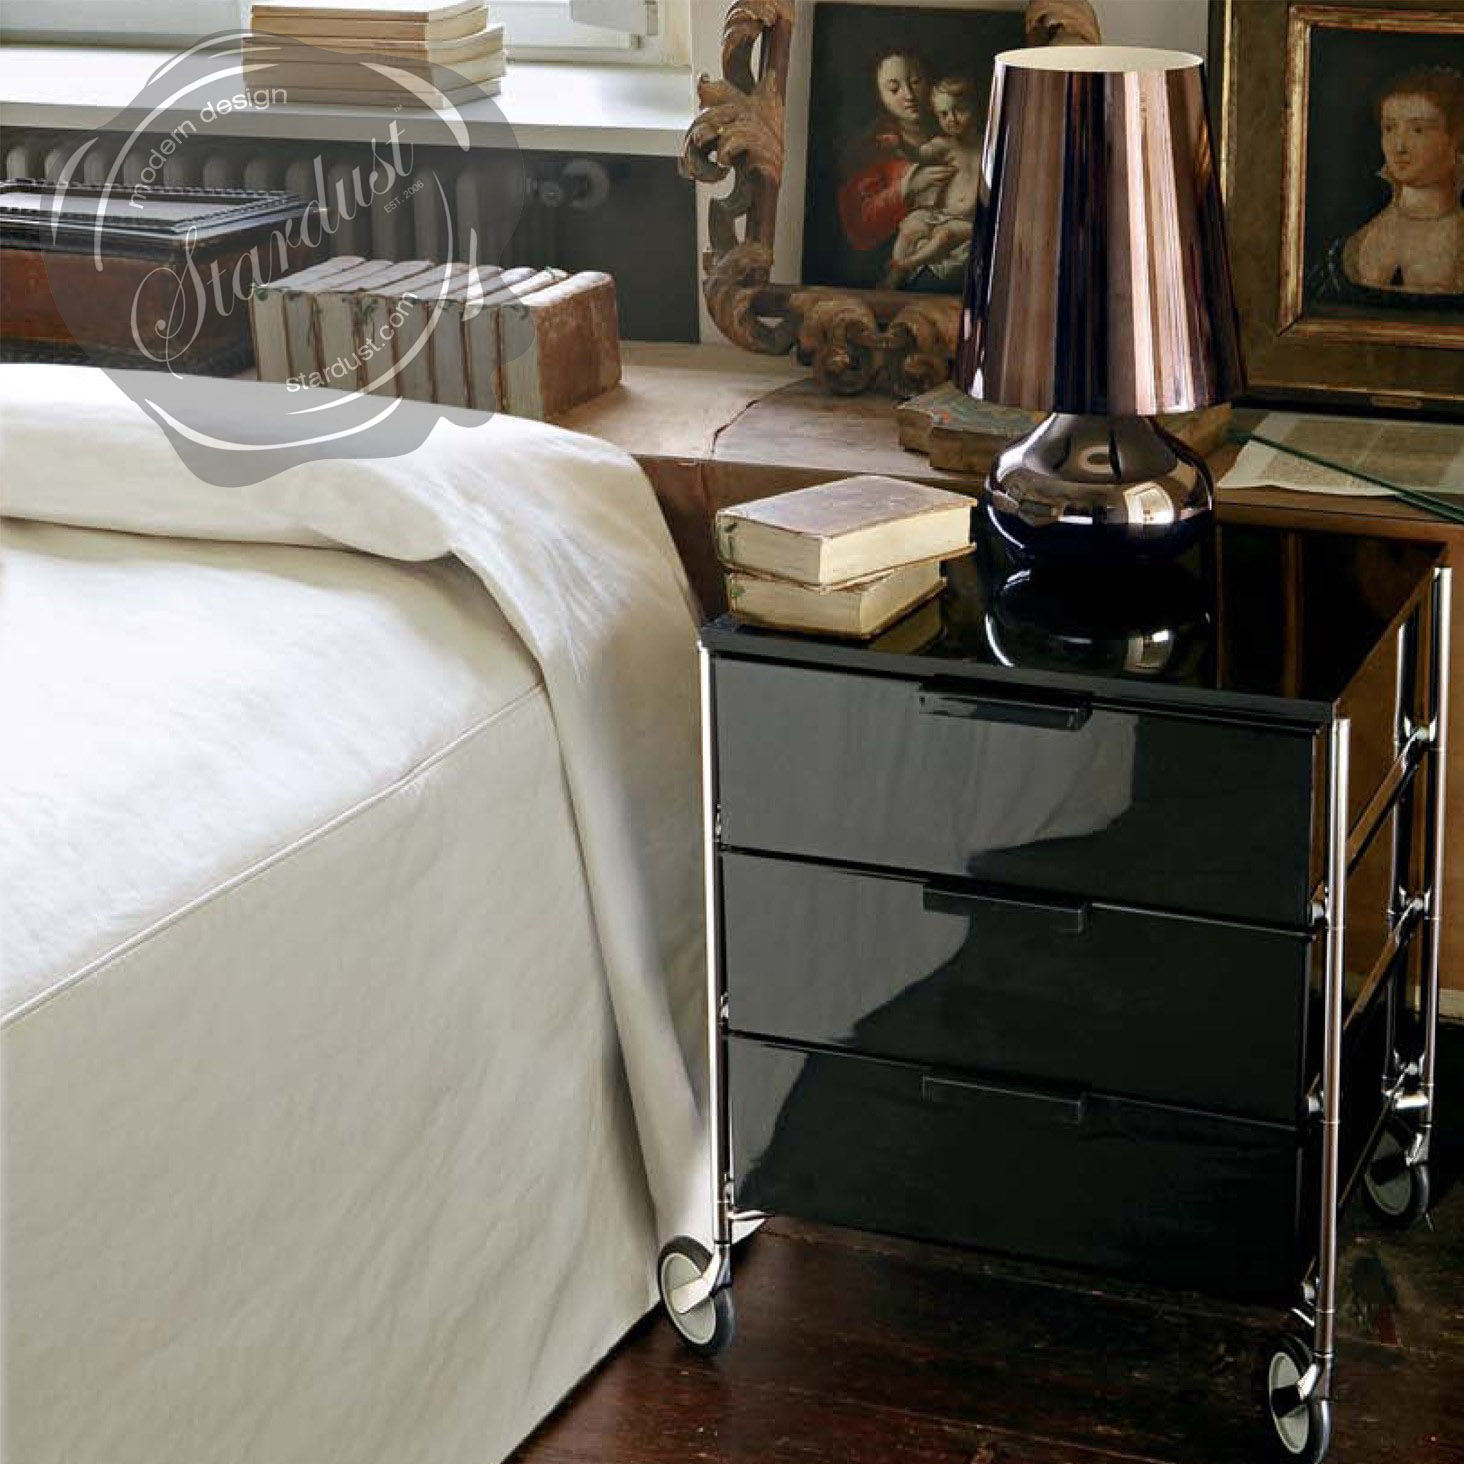 Modern interior design cindy 16 12 h table lamp with empire kartell cindy lamp geotapseo Image collections